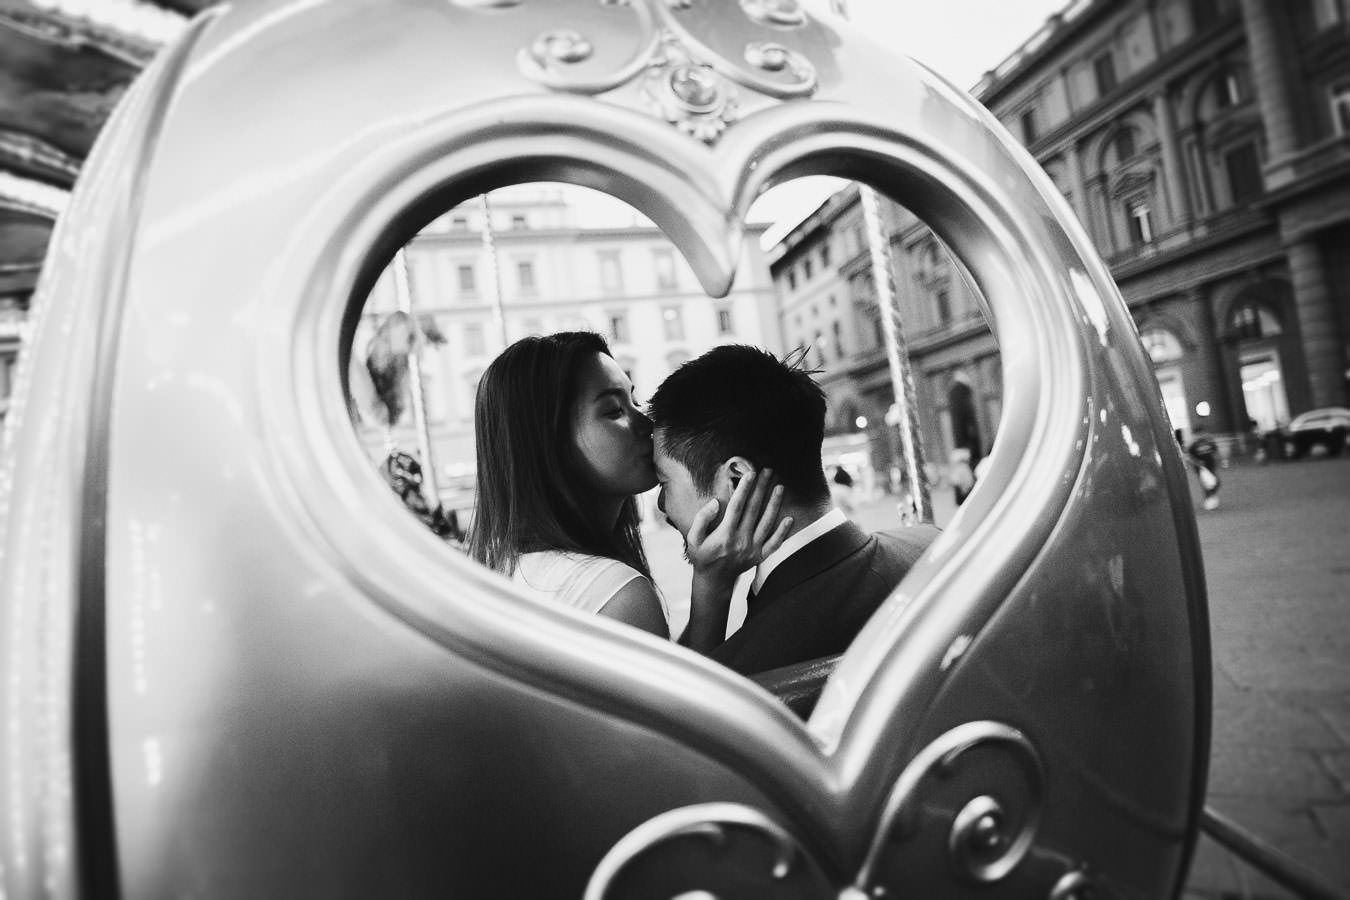 Lovely authentic and genuine moment of love. Florence engagement photo service by Gabriele Fani photographer